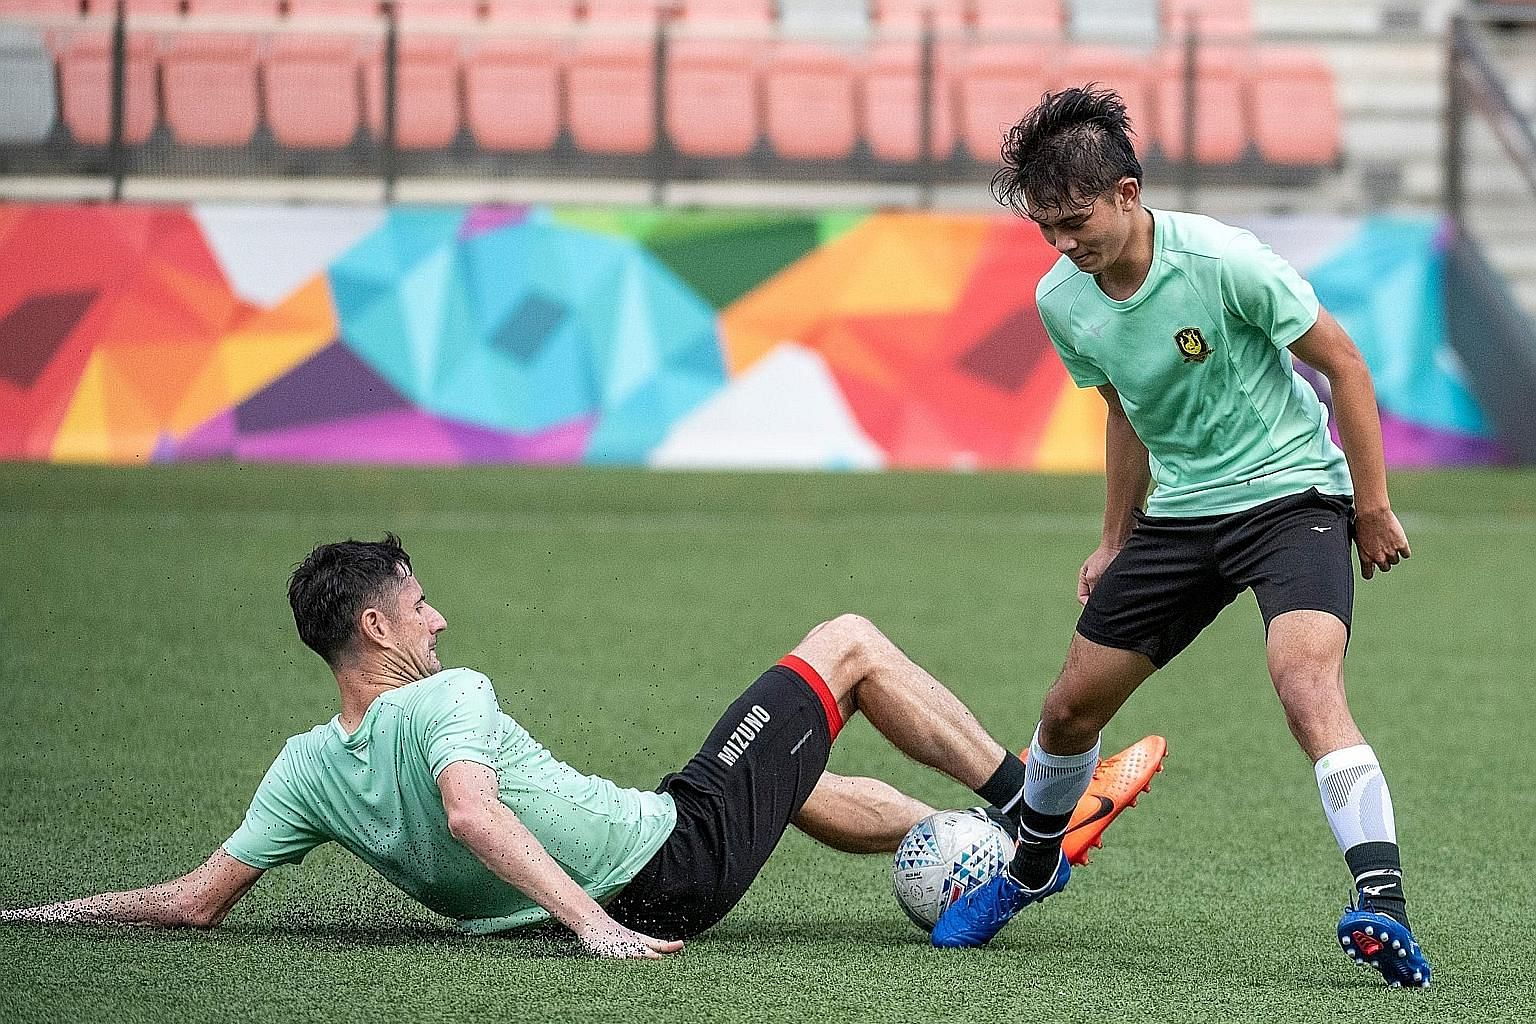 Tampines Rovers' veteran defender Daniel Bennett tackling forward Danish Siregar during training at Our Tampines Hub last month. The Singapore Premier League leaders are taking gradual steps in preparing for the possible restart of play soon, with th